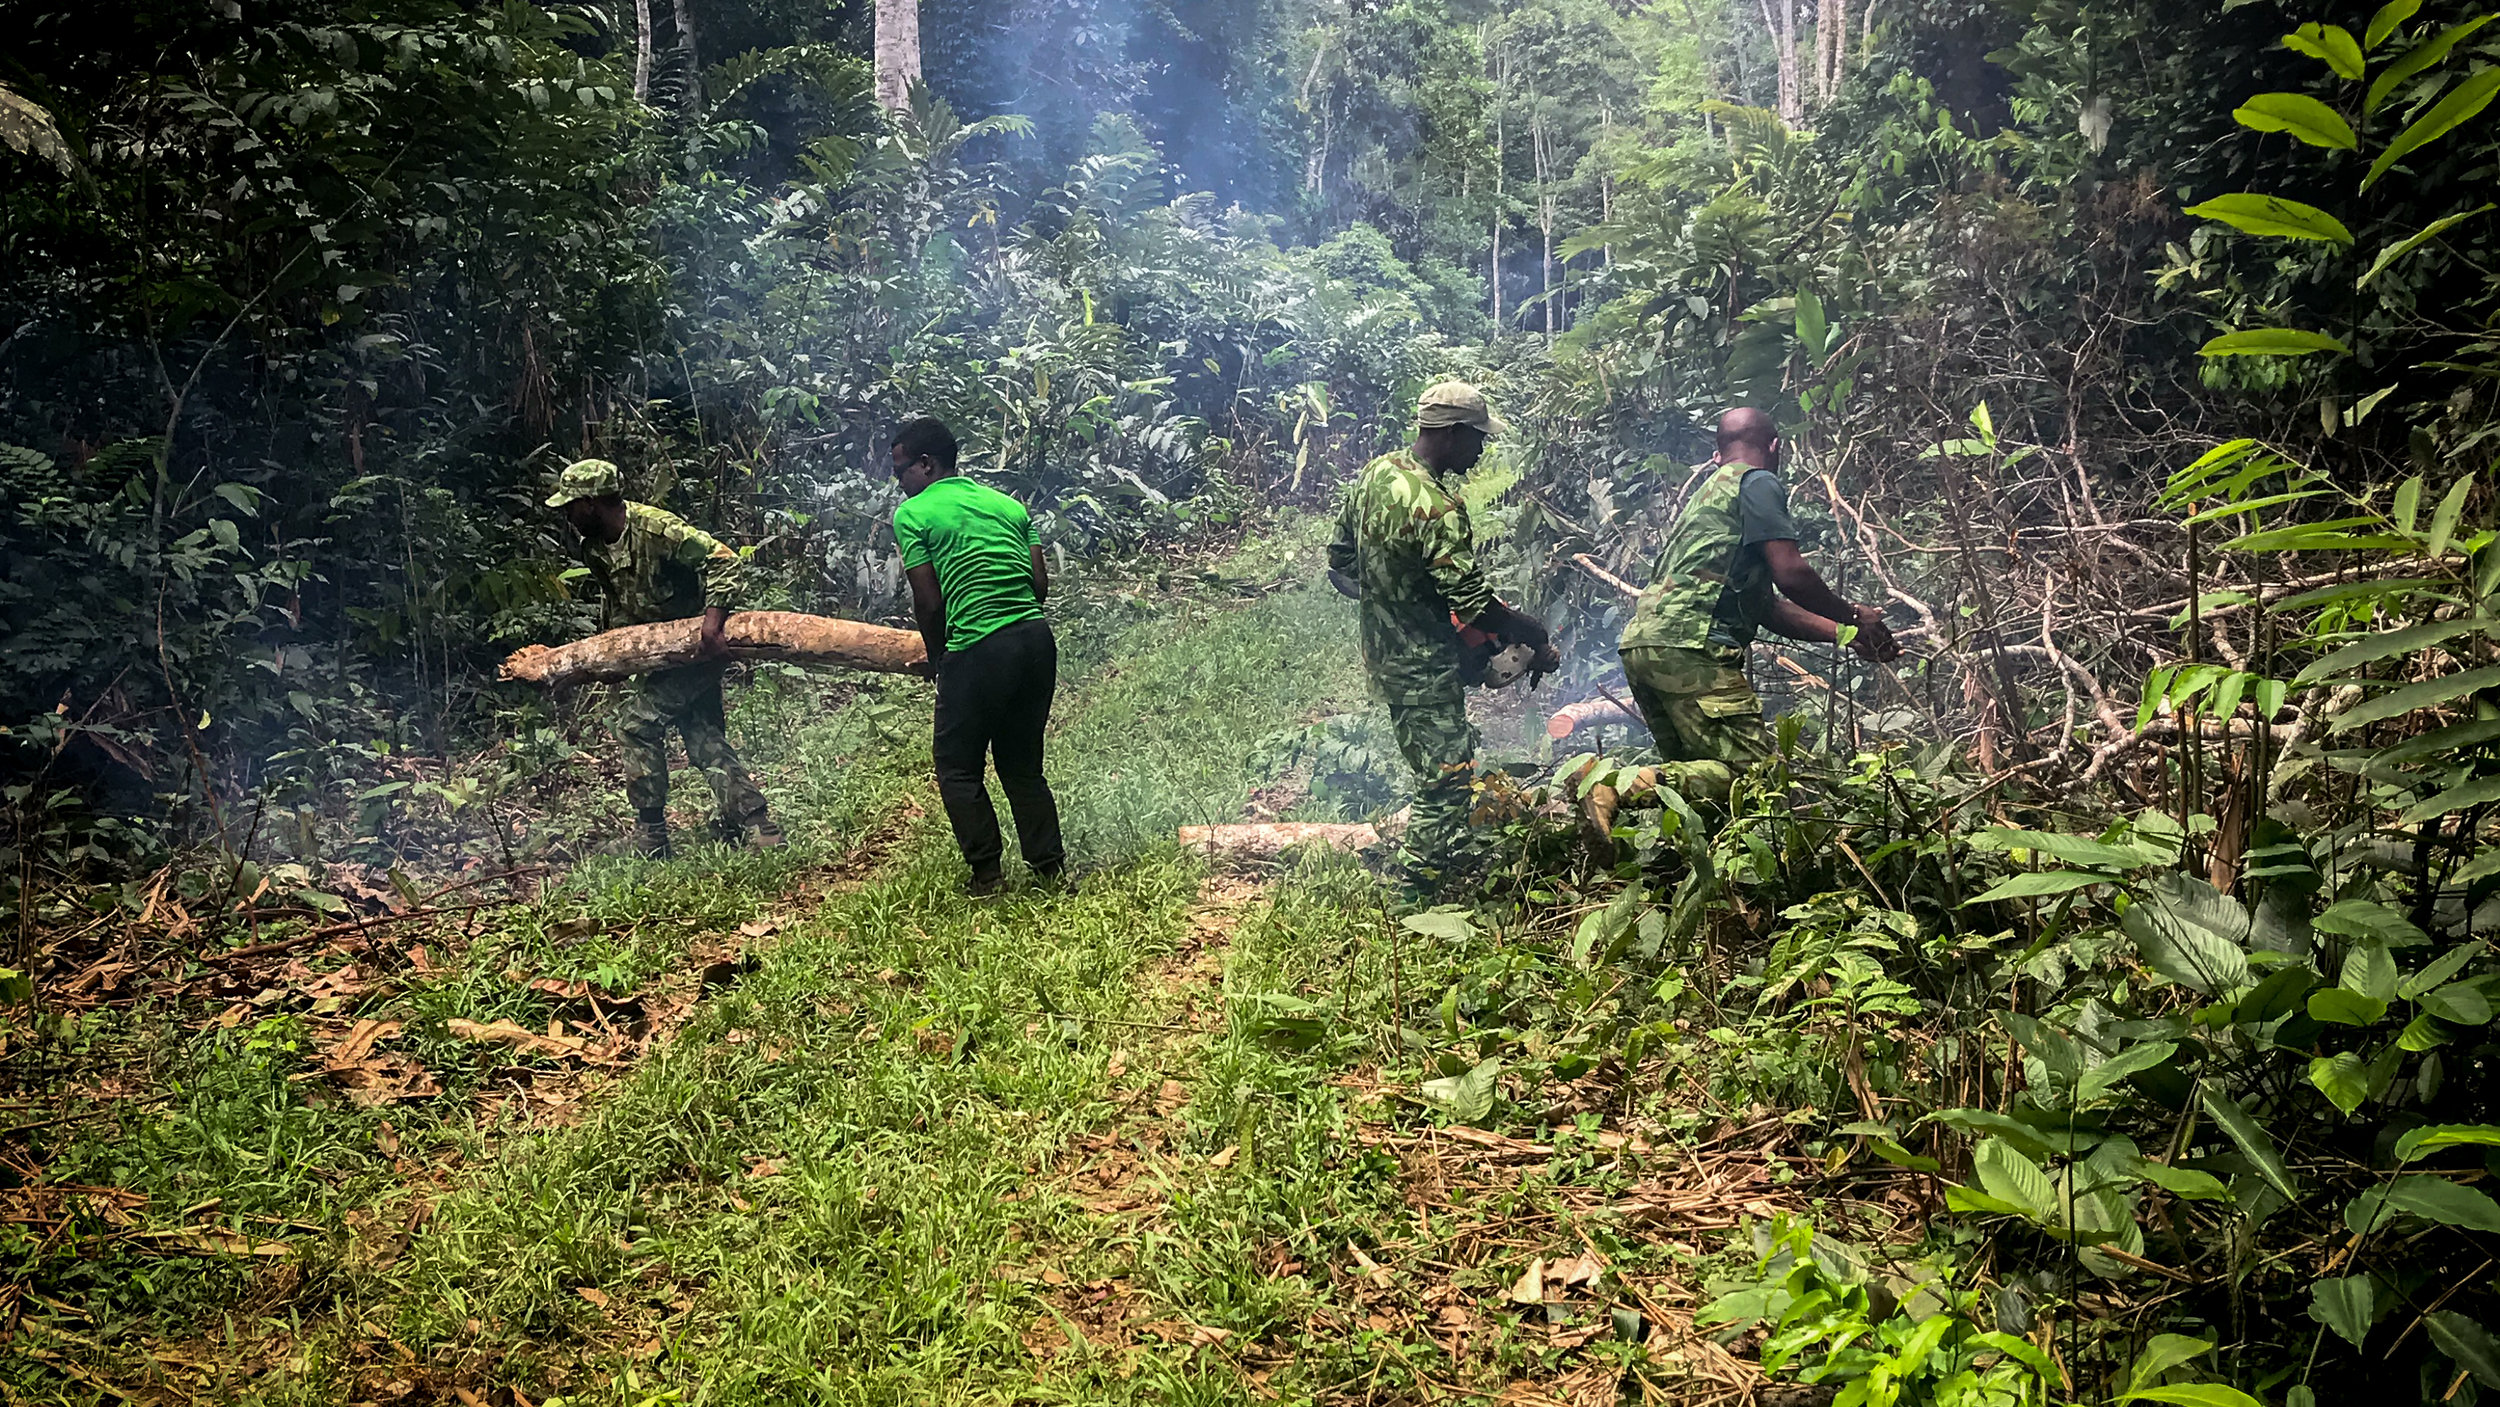 Our friends the rangers clearing a path in the jungle